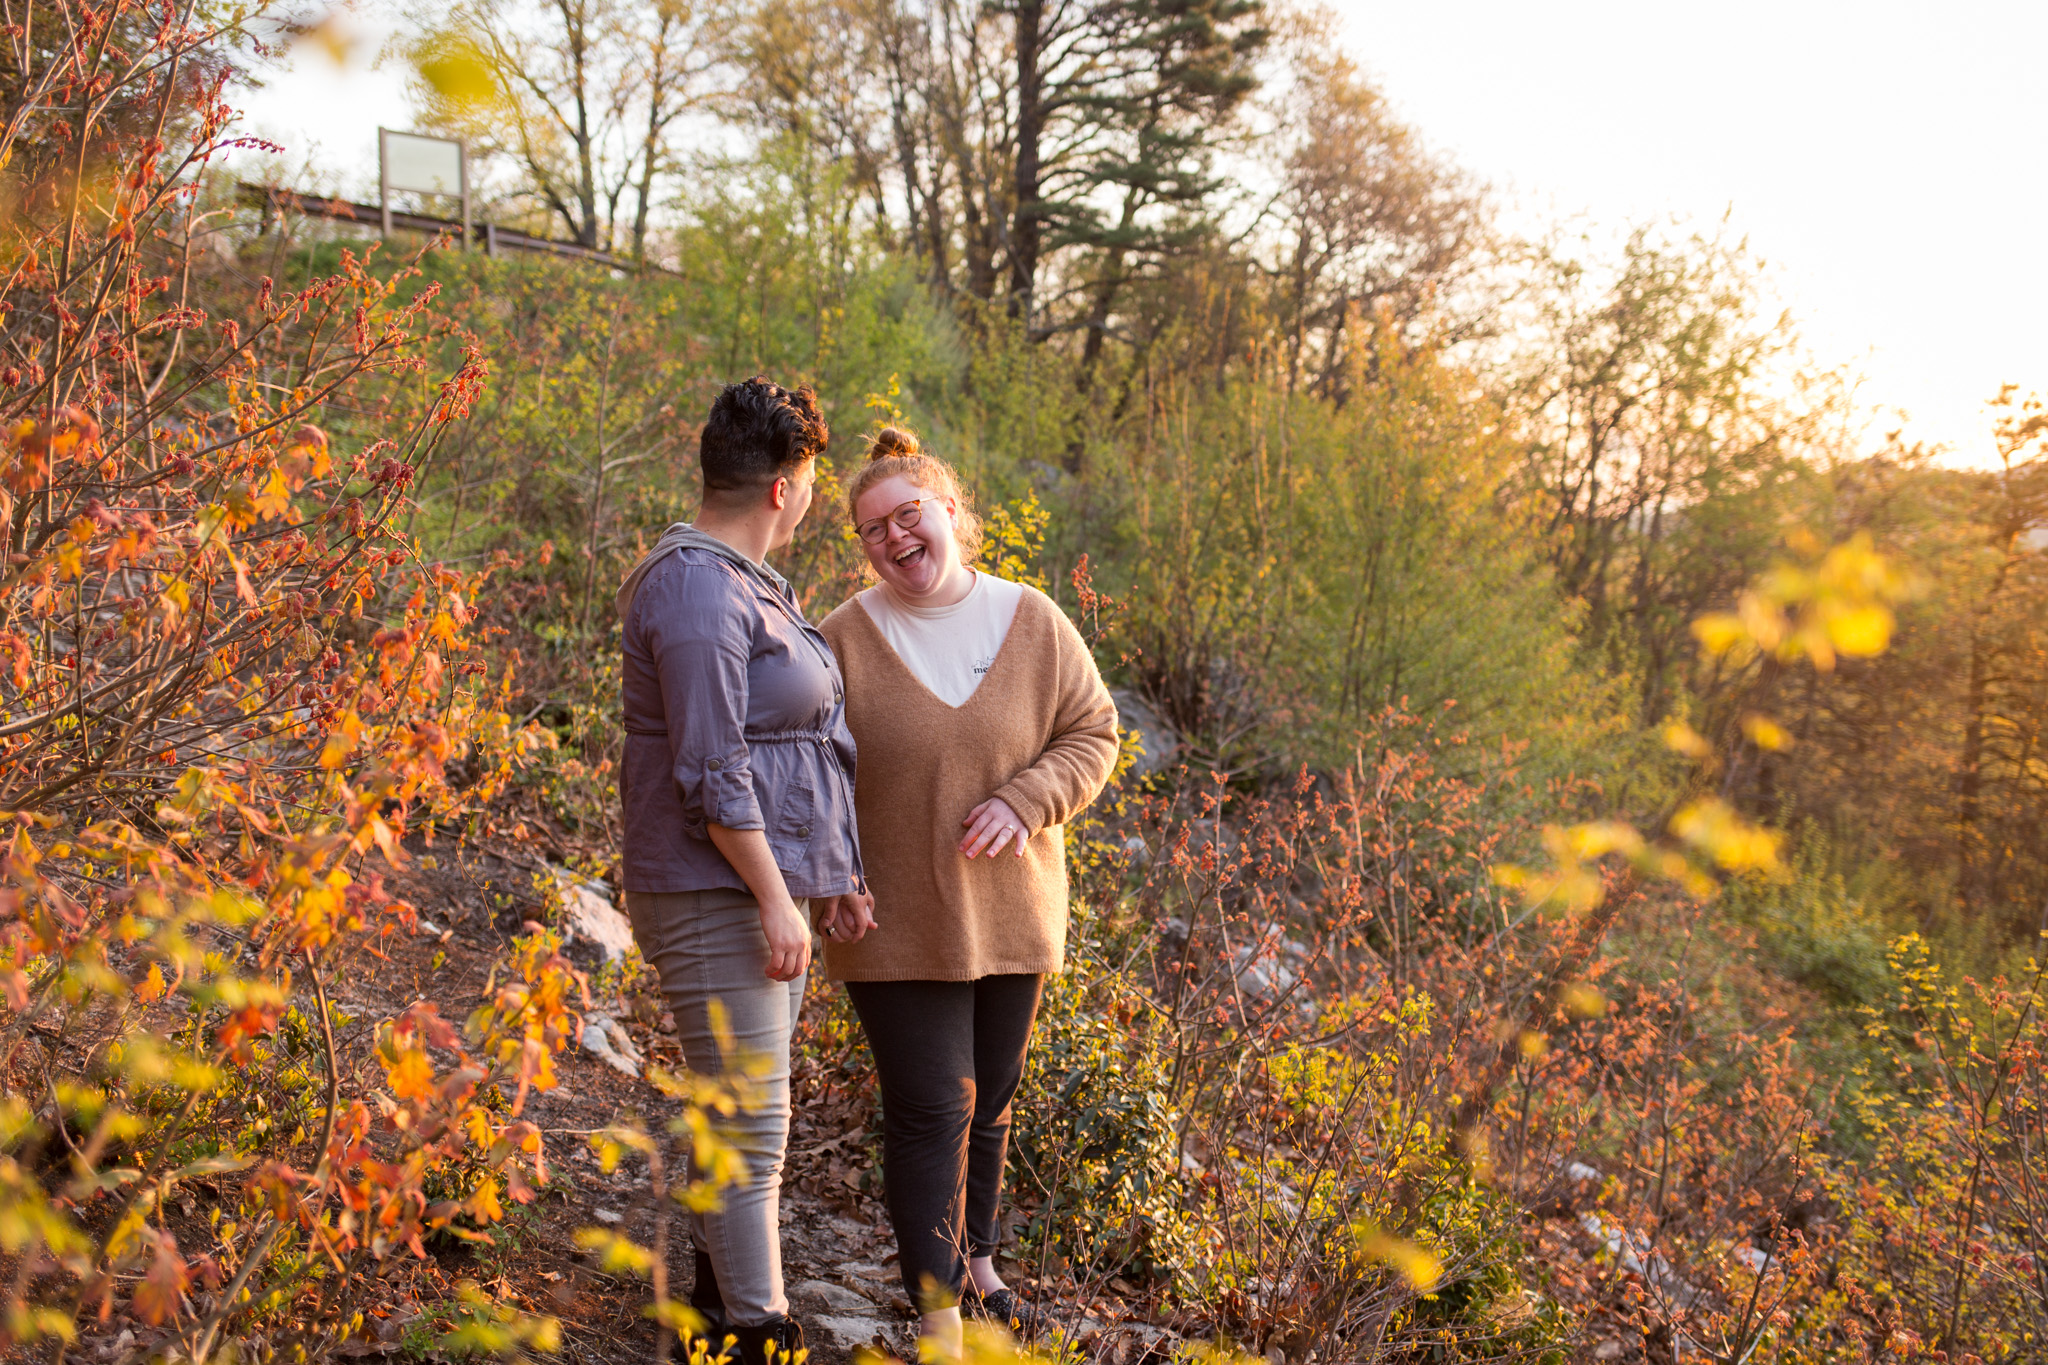 LightCreative_201904_AlexanBecky_Raleigh_Proposal_Photography_025_blog.jpg